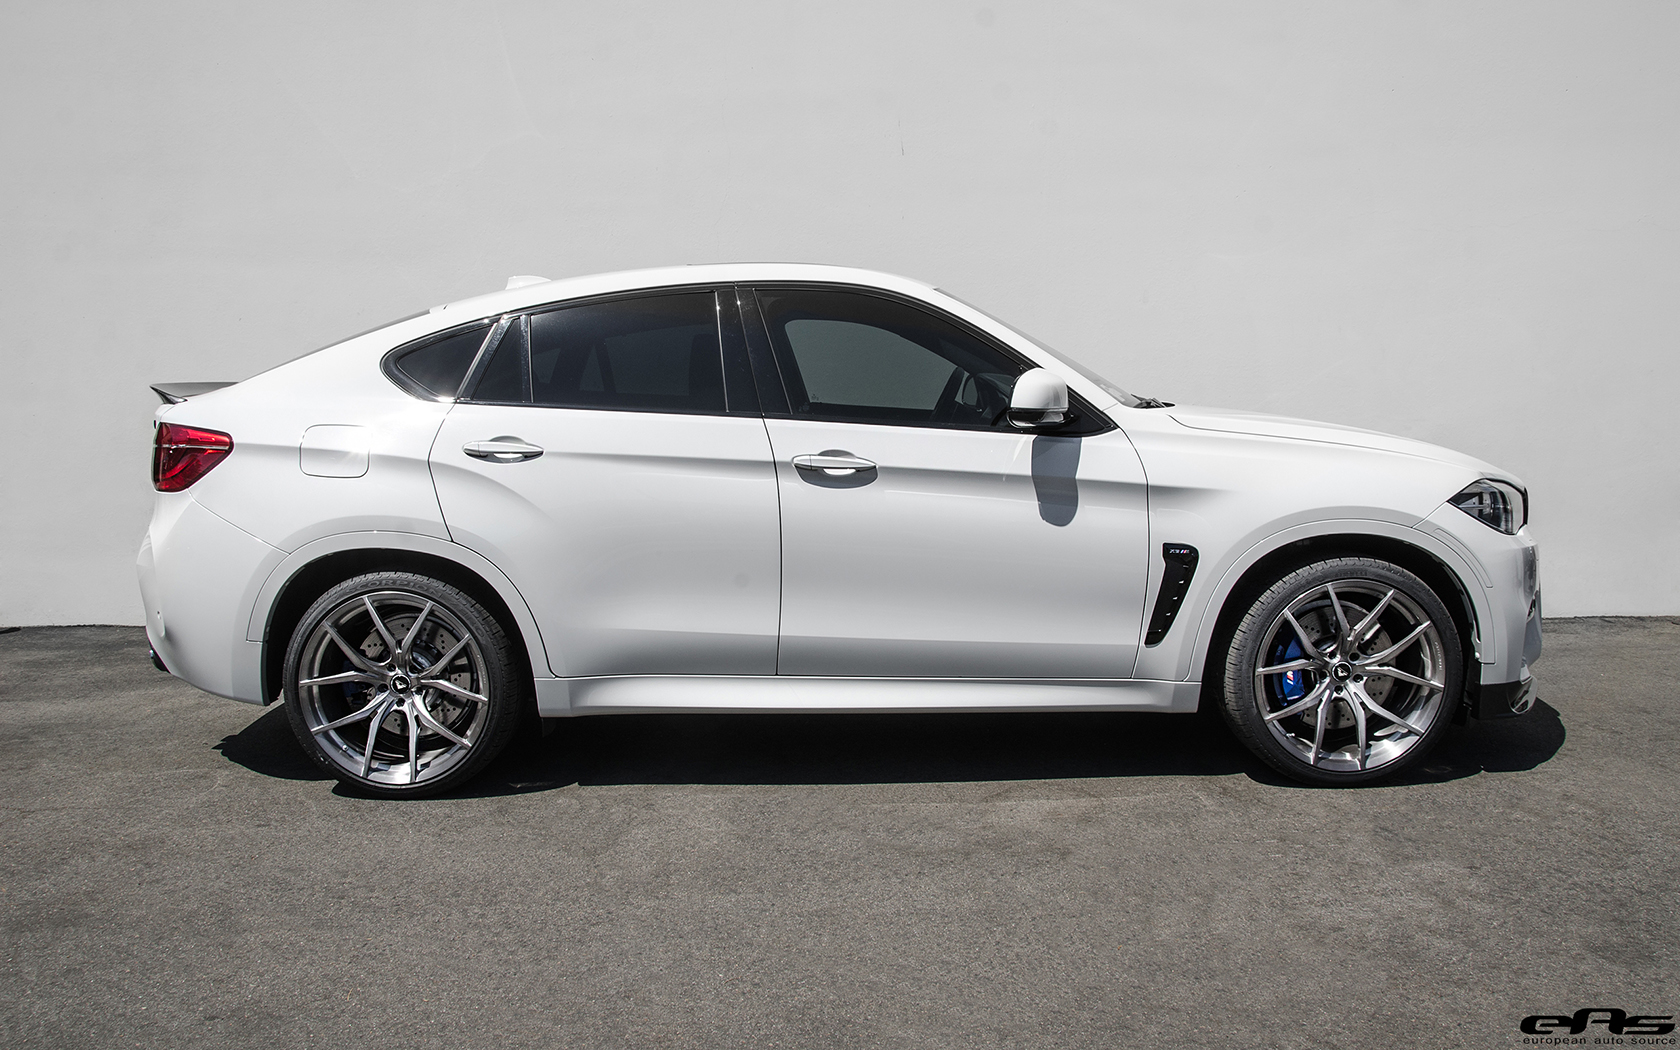 This Alpine White Bmw X6 M Gets A Makeover